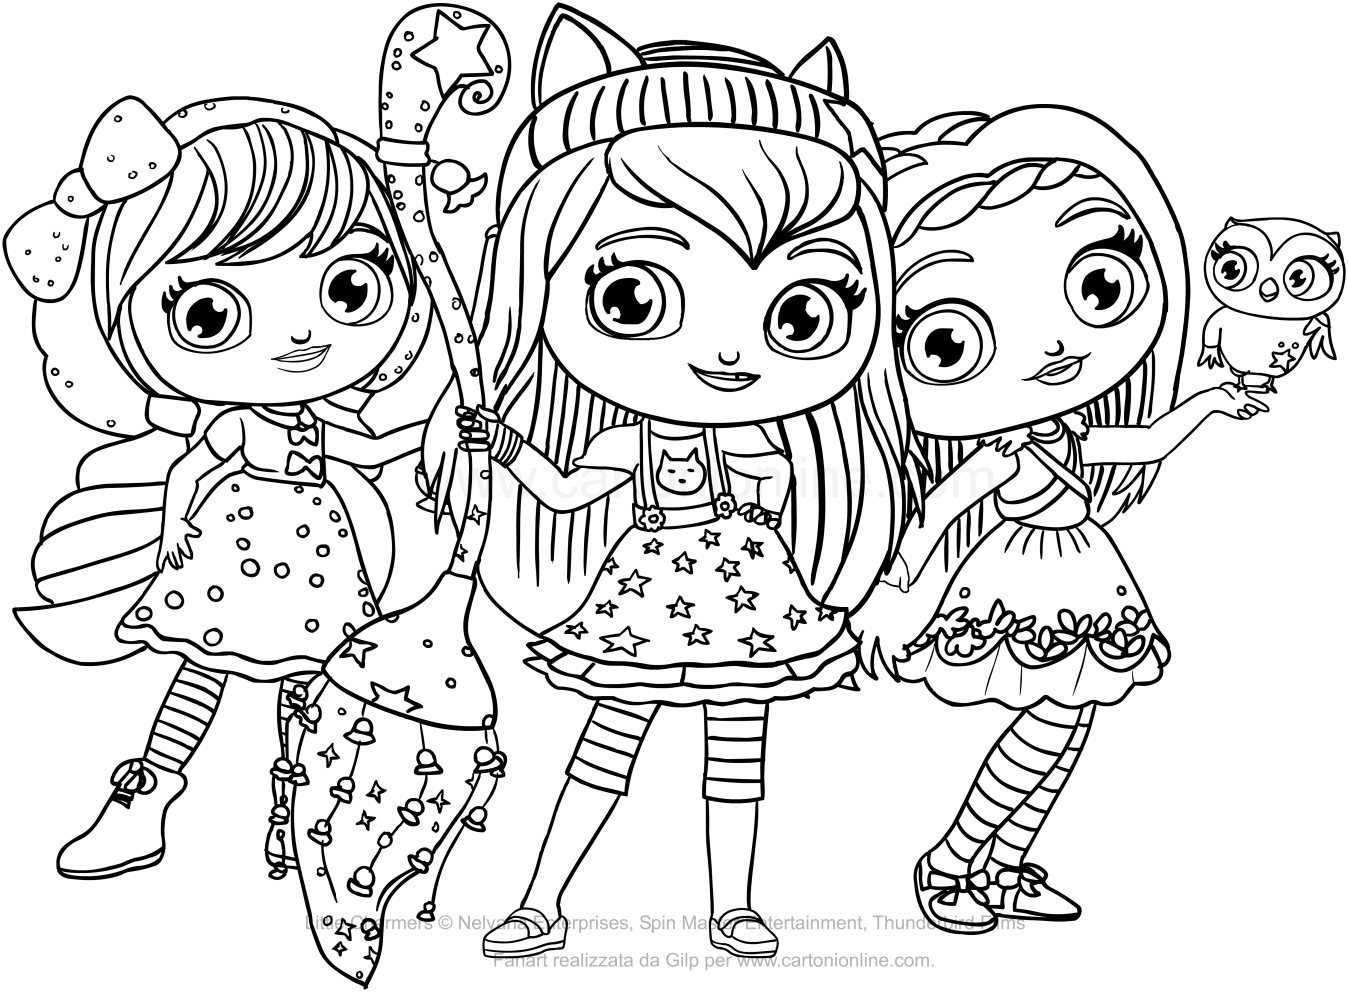 little charmers coloring pages printable - photo#11